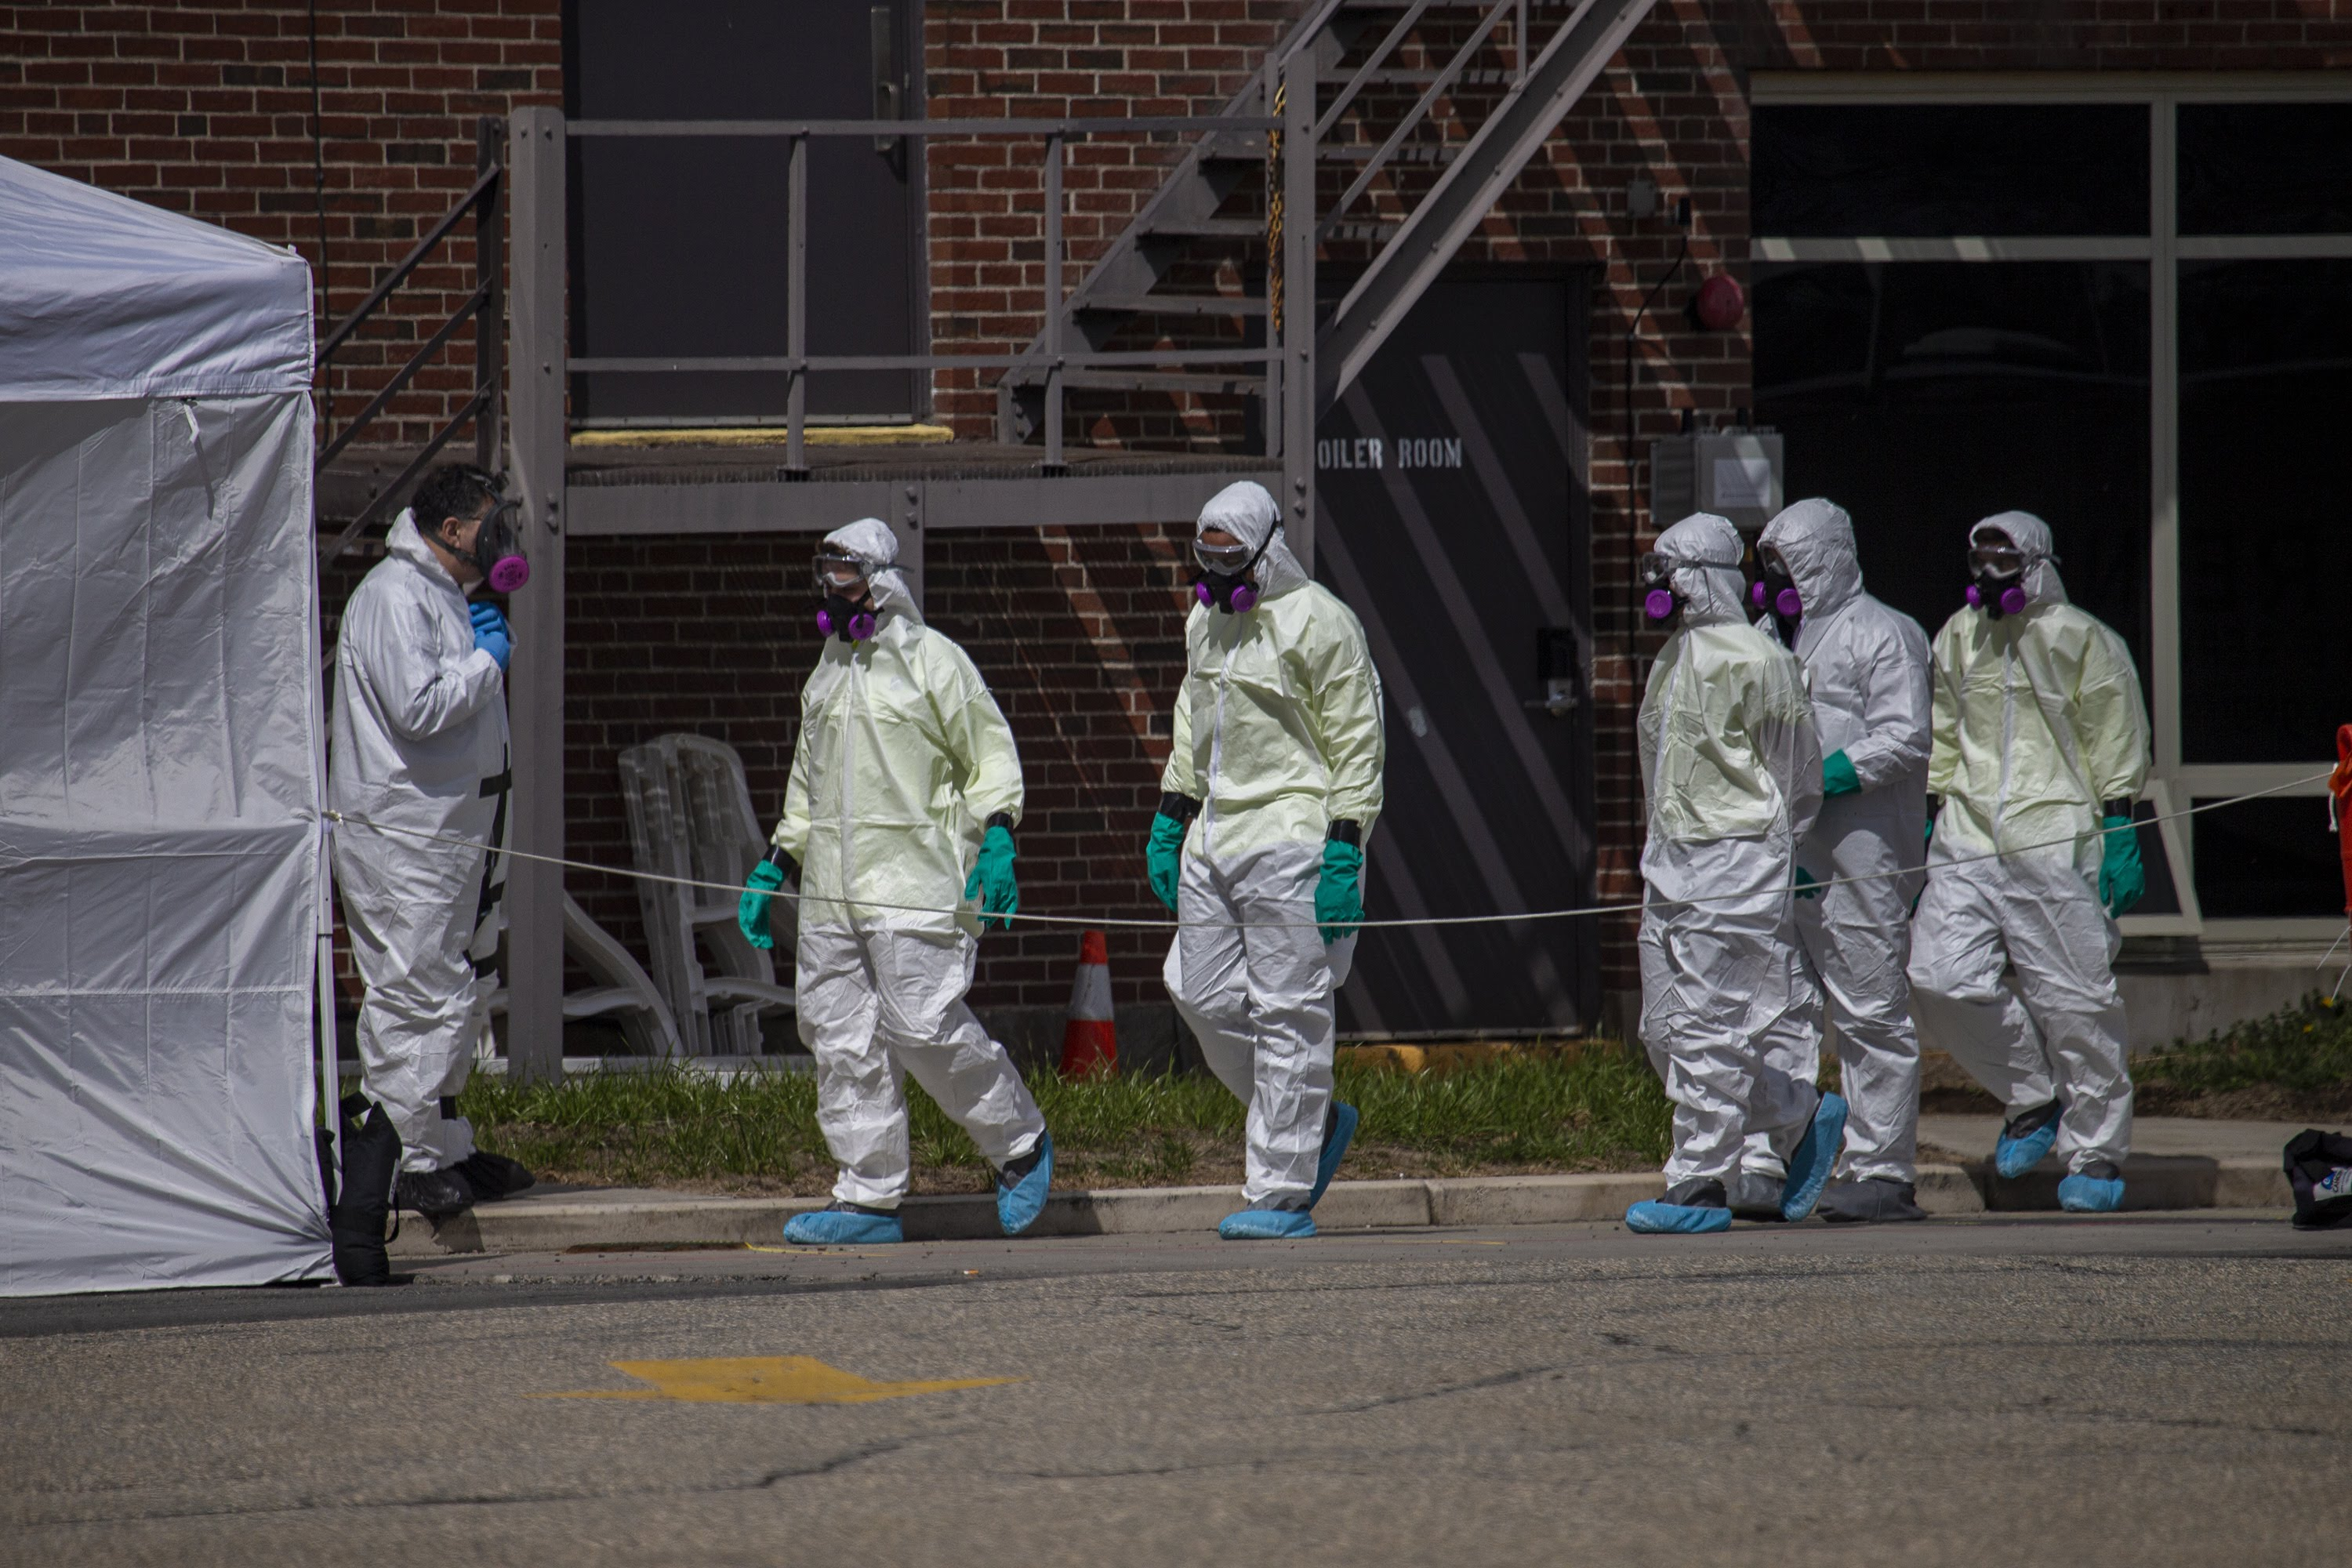 A cleaning crew suited up with protective gear enters the Holyoke Soldiers' Home on March 31. (Jesse Costa/WBUR)